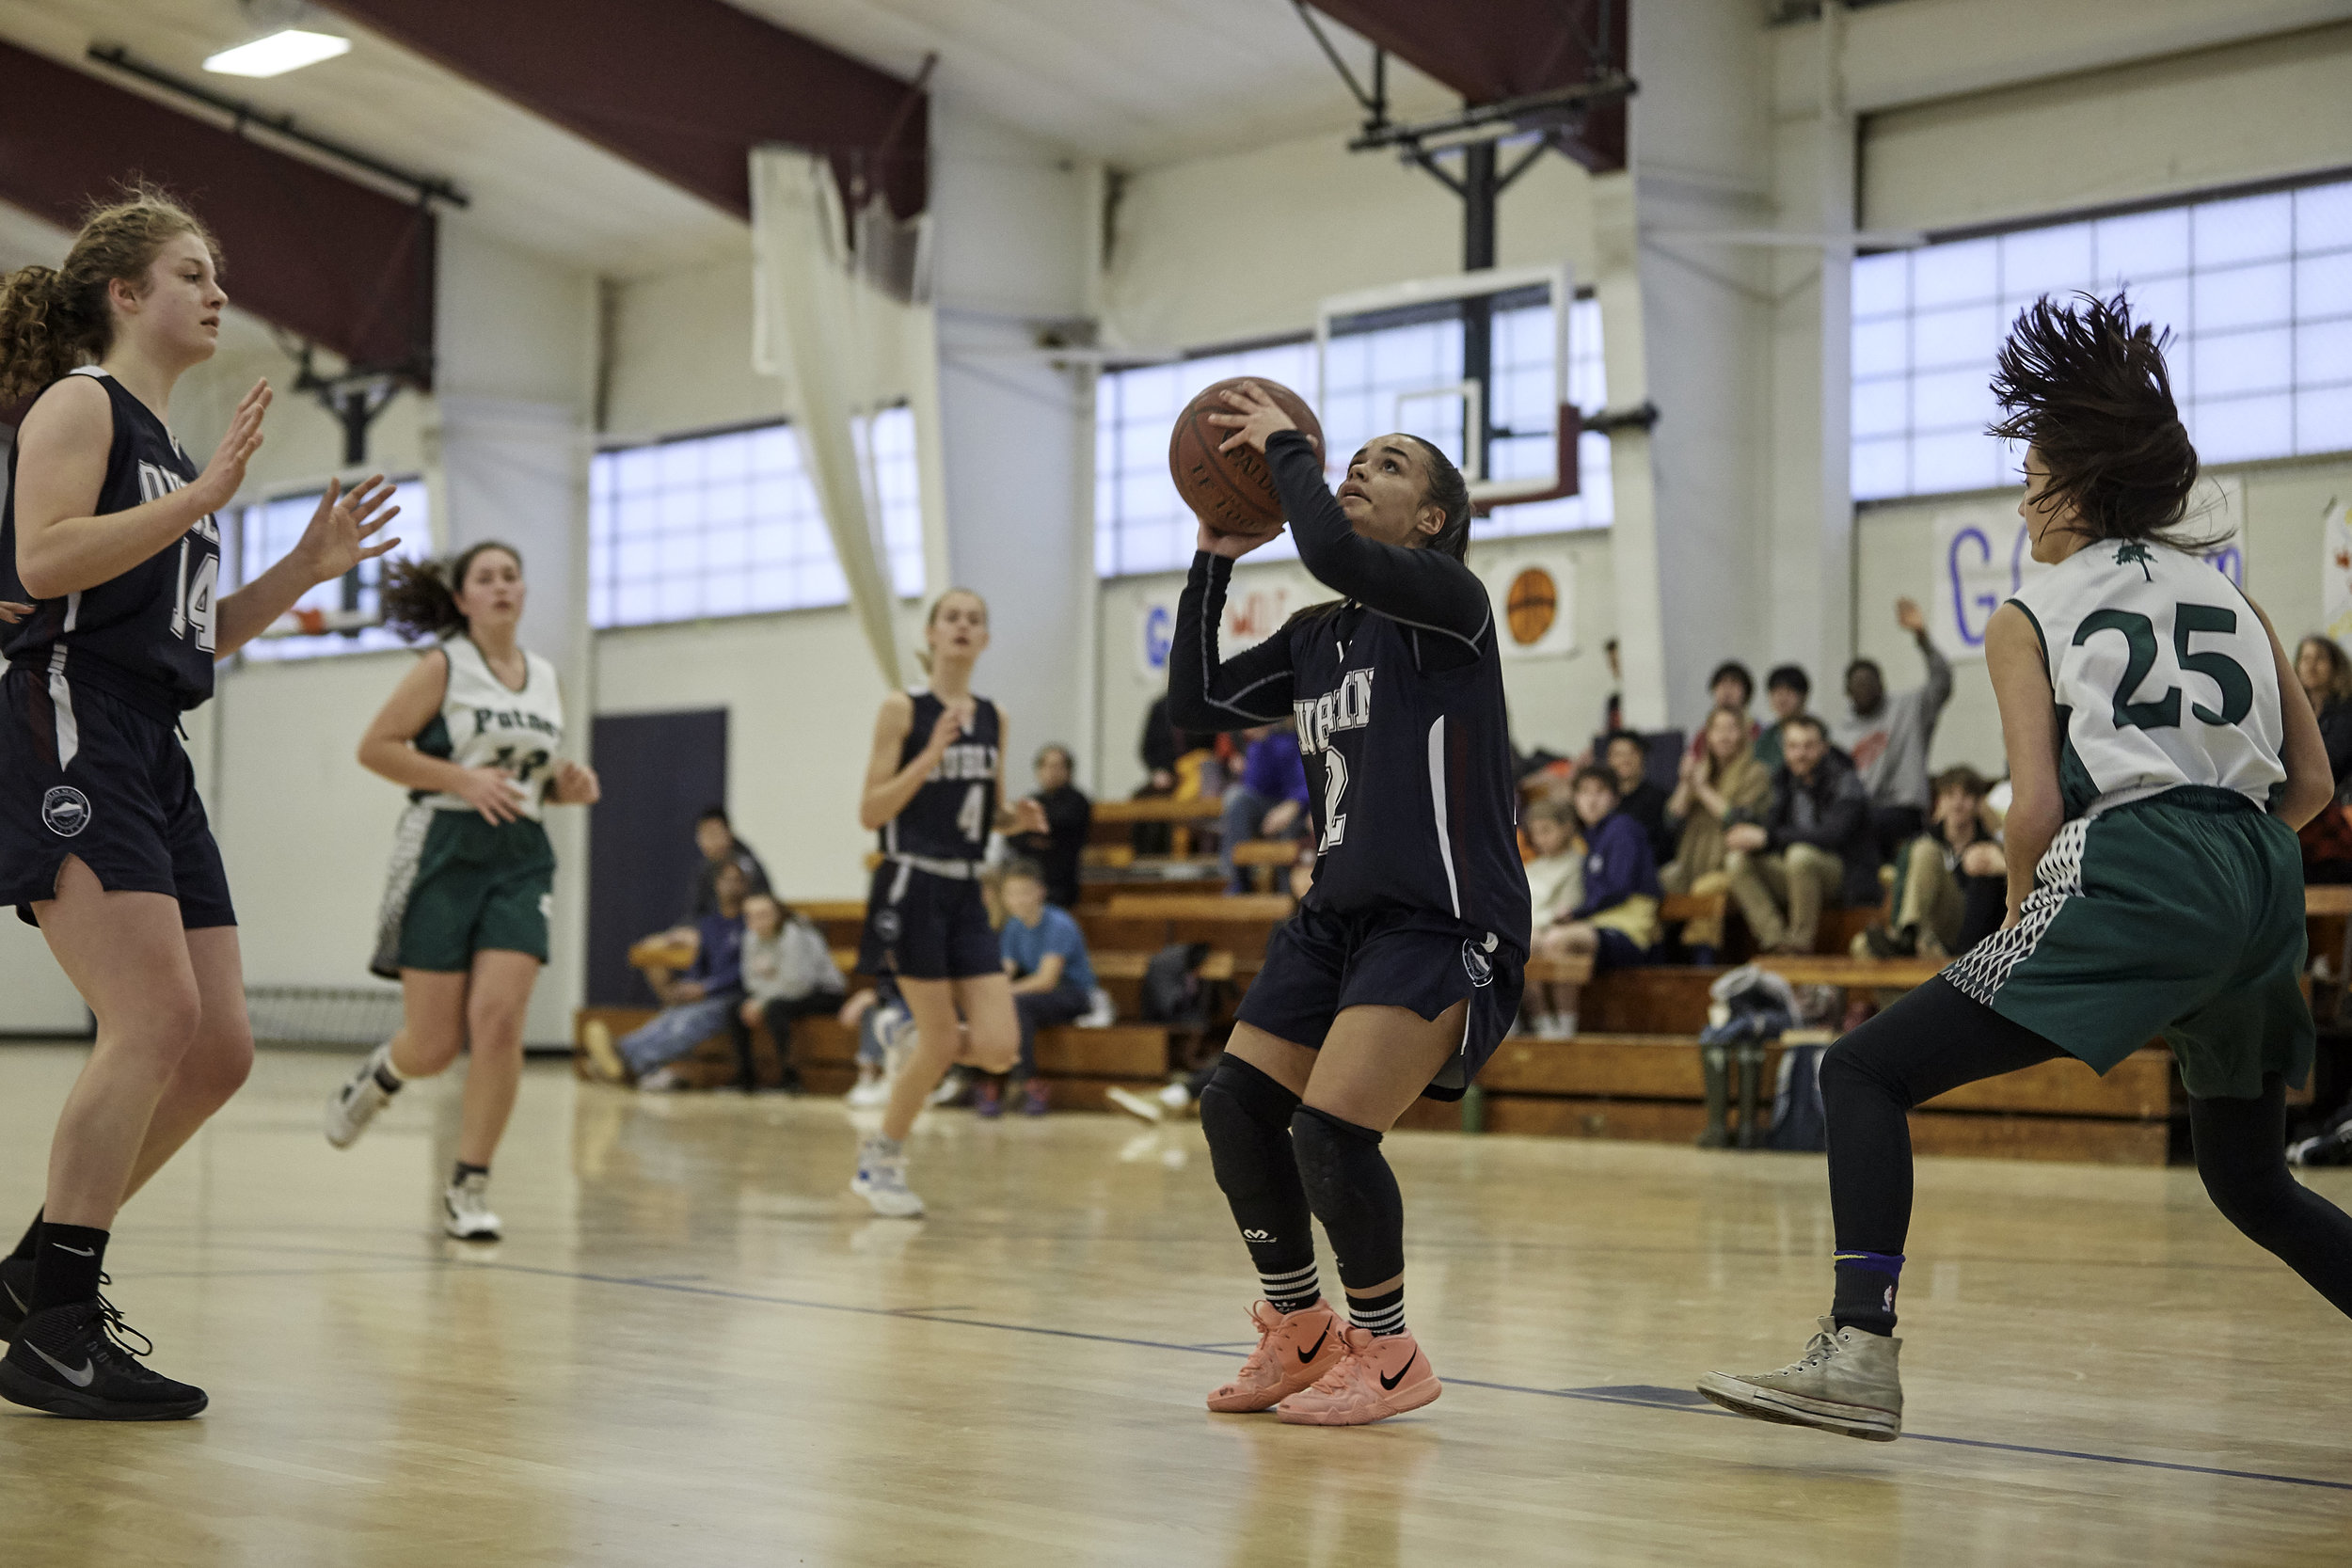 Basketball vs Putney School, February 9, 2019 - 167229.jpg